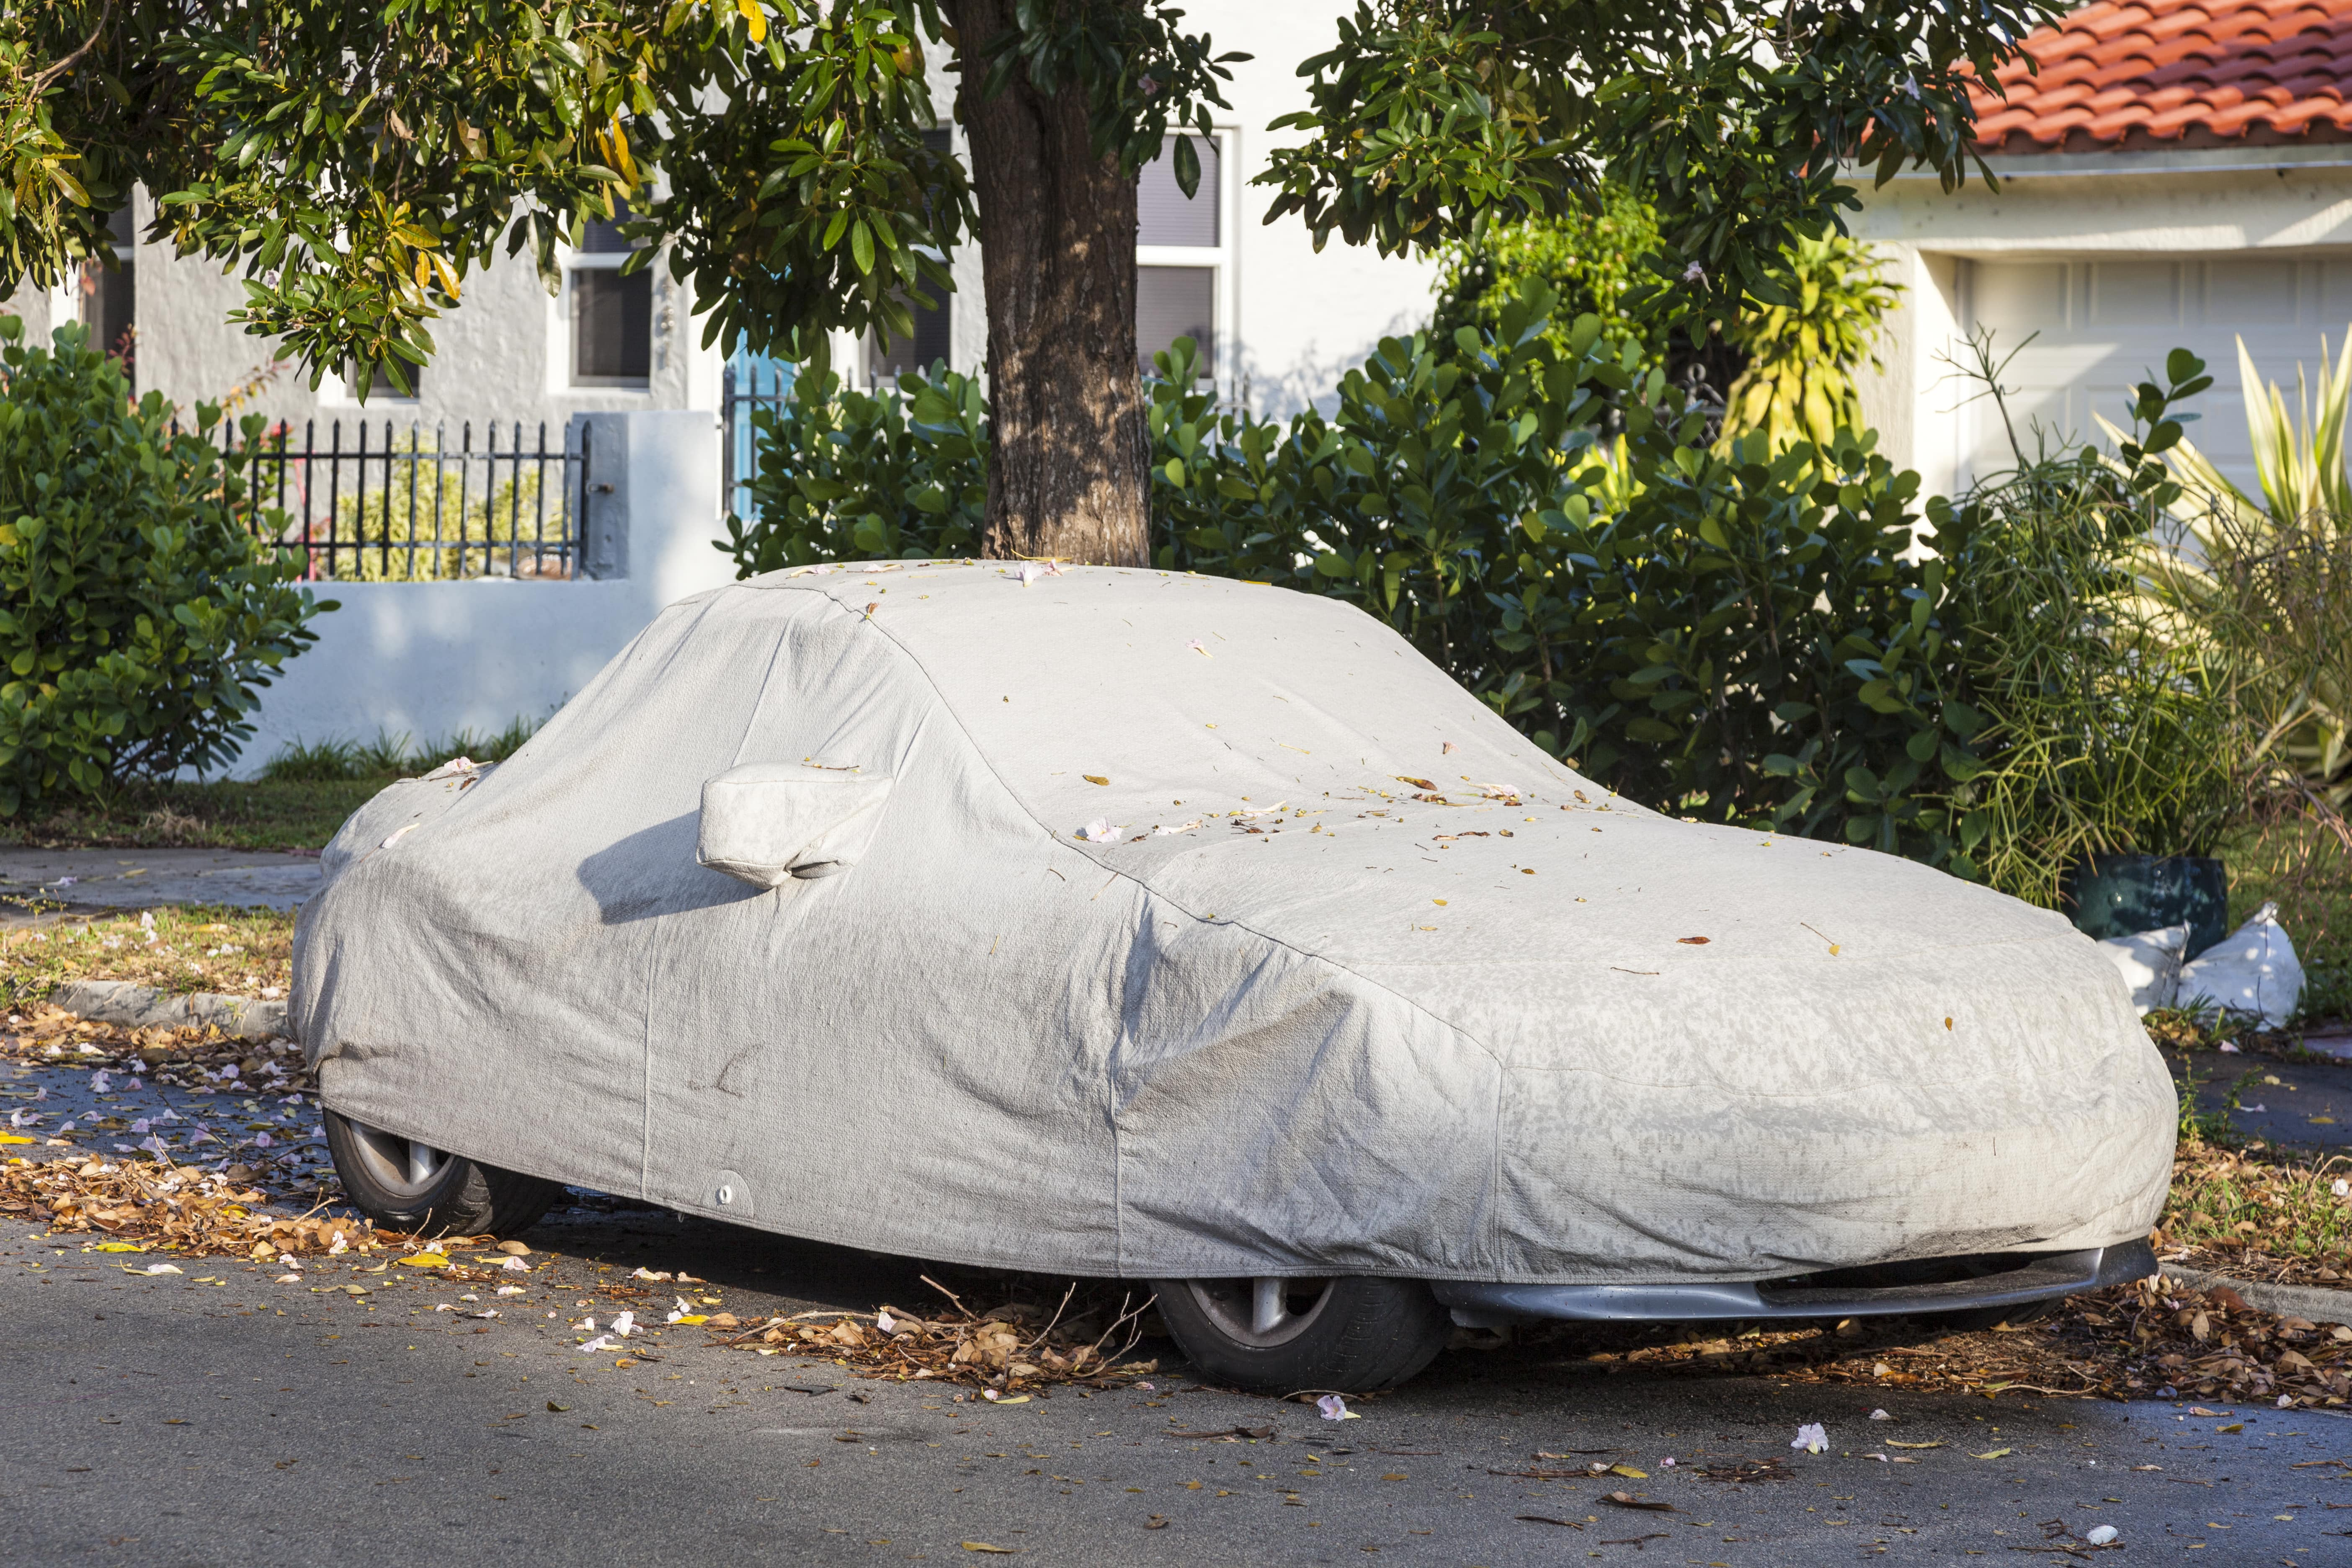 car-under-protective-cover-parked-on